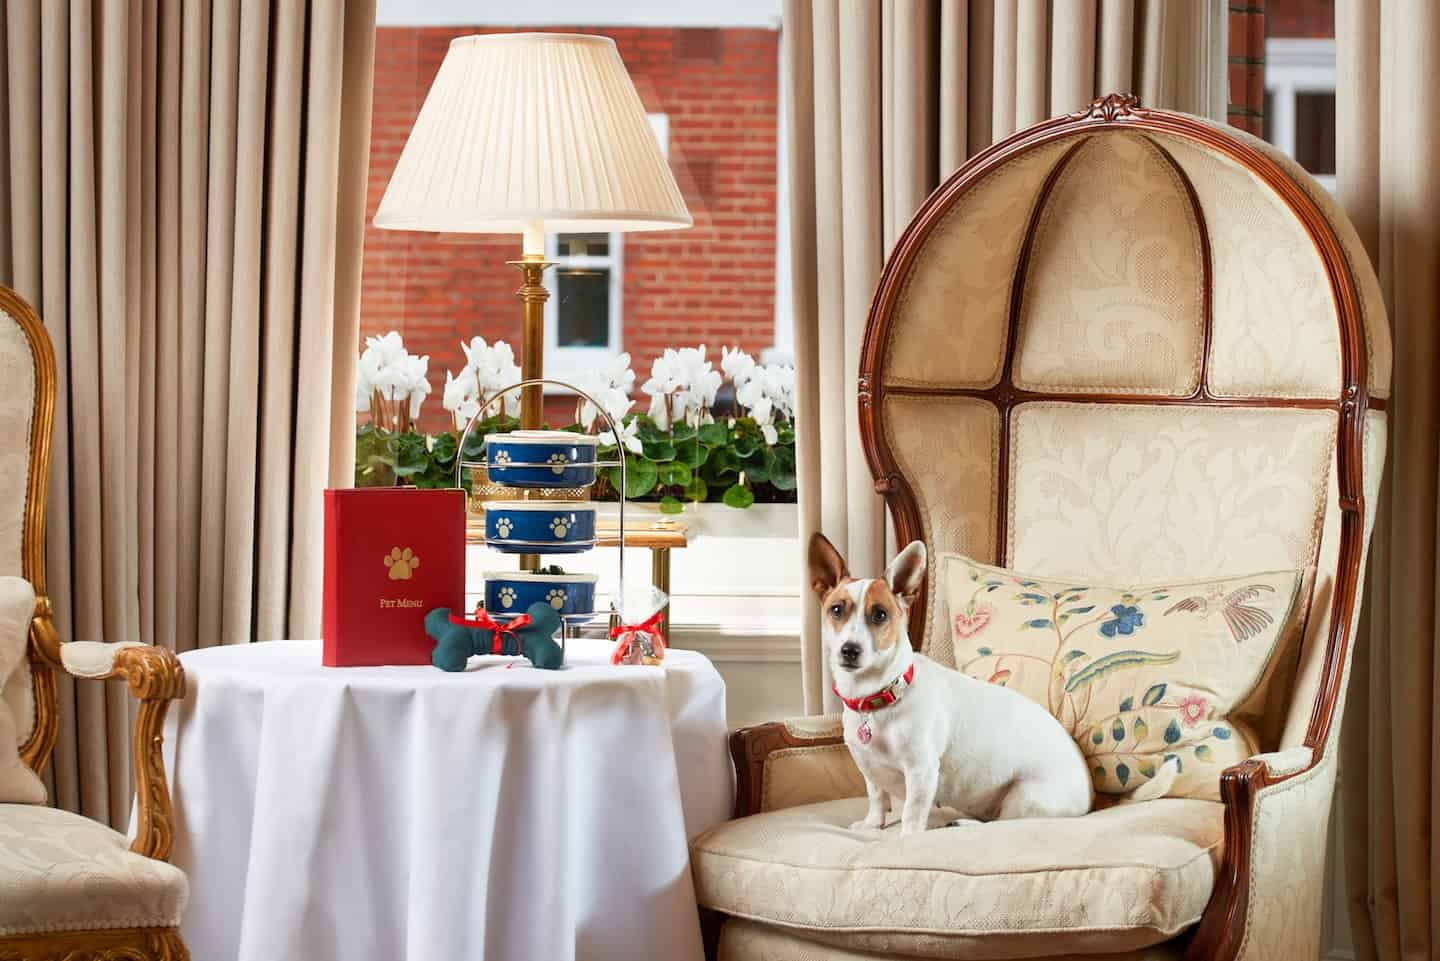 Guide To The Best Dog-friendly Afternoon Tea in London